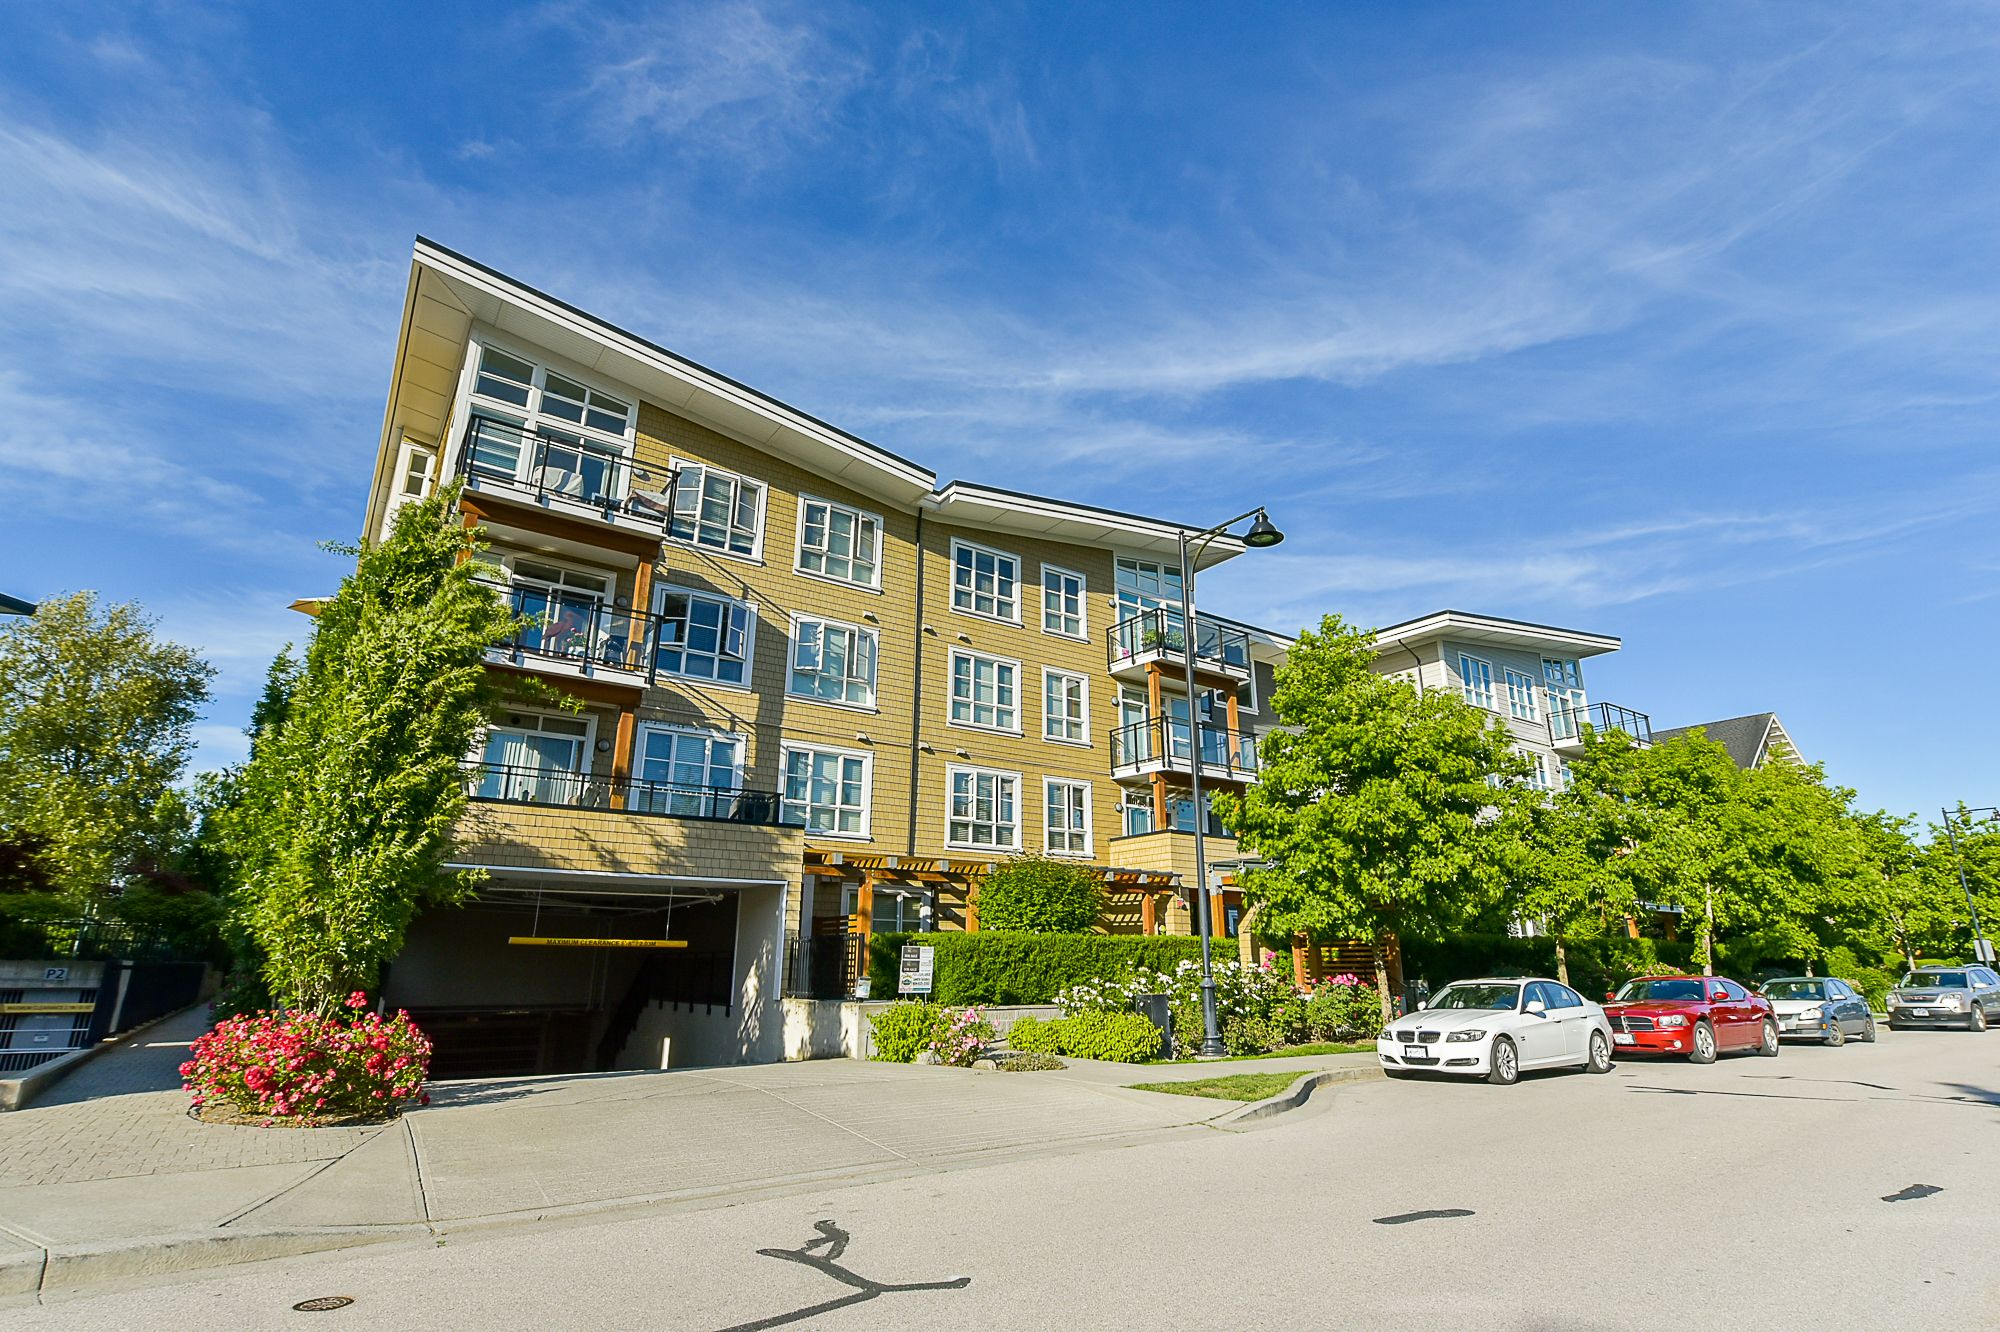 Main Photo: 408 23255 Billy Brown Road in : Fort Langley Condo for sale (Langley)